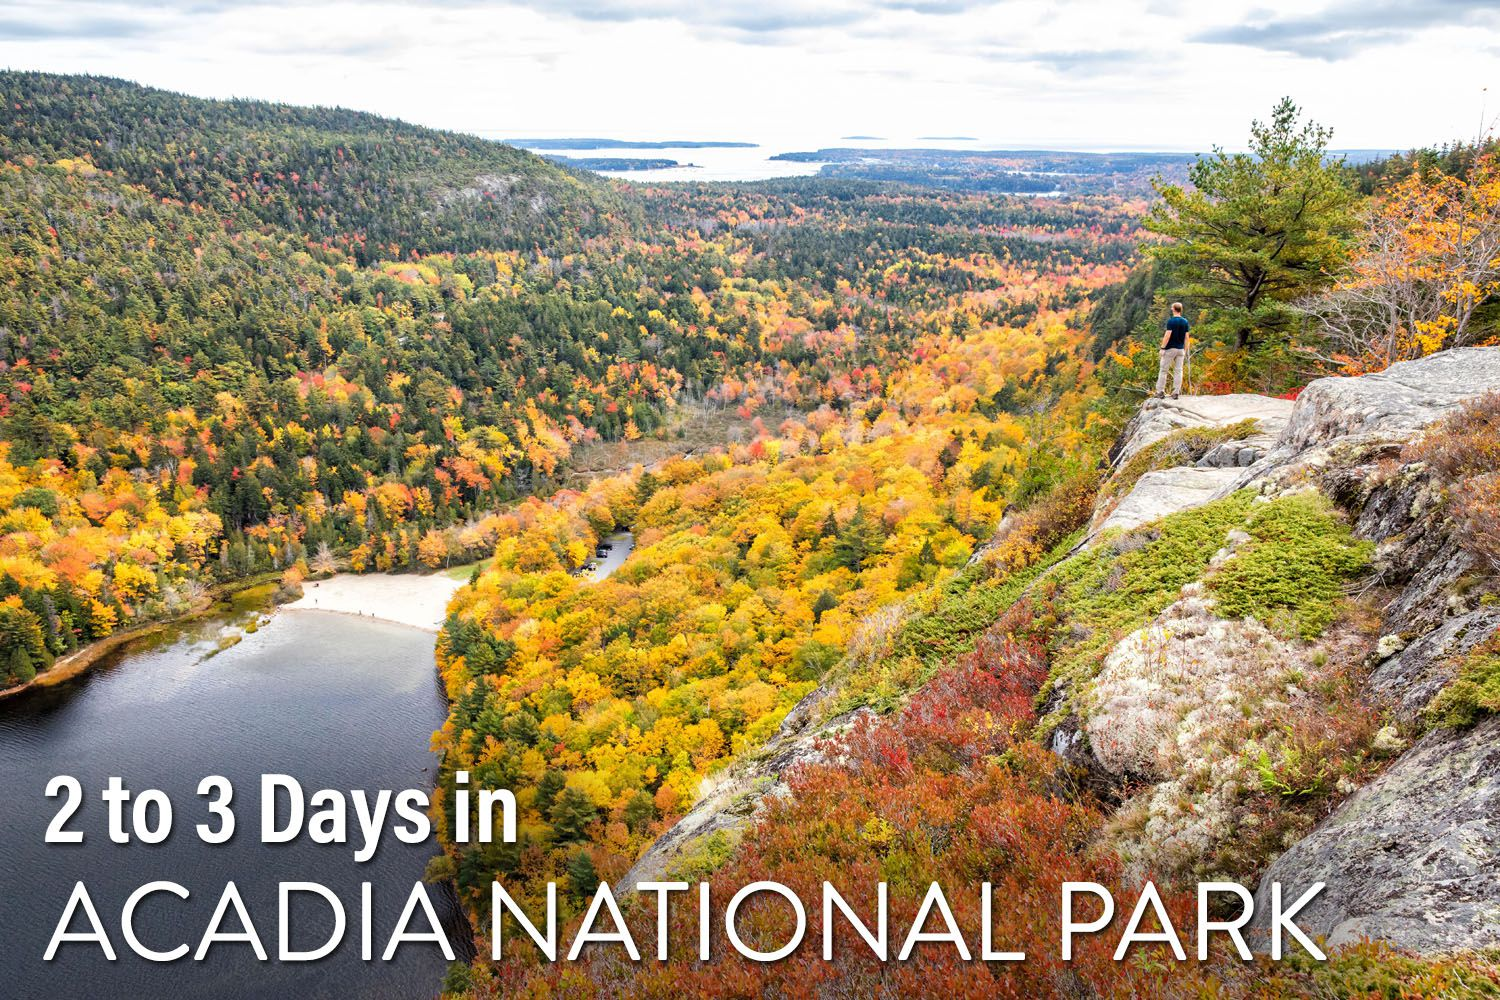 2 to 3 days Acadia National Park